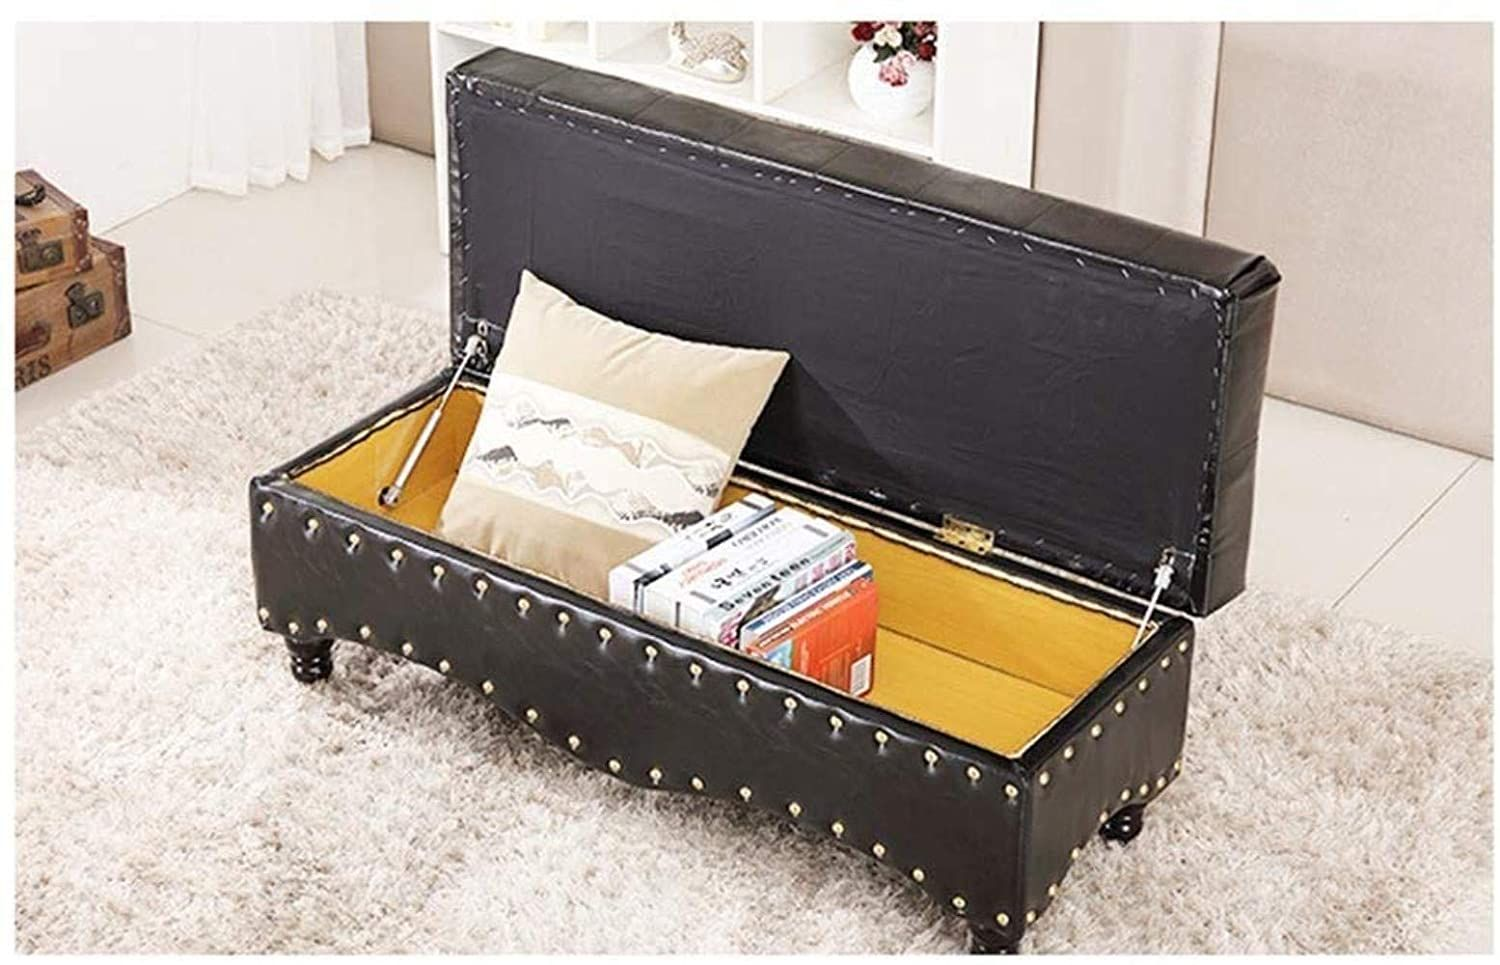 Thbeibei Storage Benches Storage Ottoman Bench Hallway Entryway Shoe Bench Storage Bench Pouffe Footstoo In 2020 Storage Ottoman Bench Entryway Shoe Bench With Storage